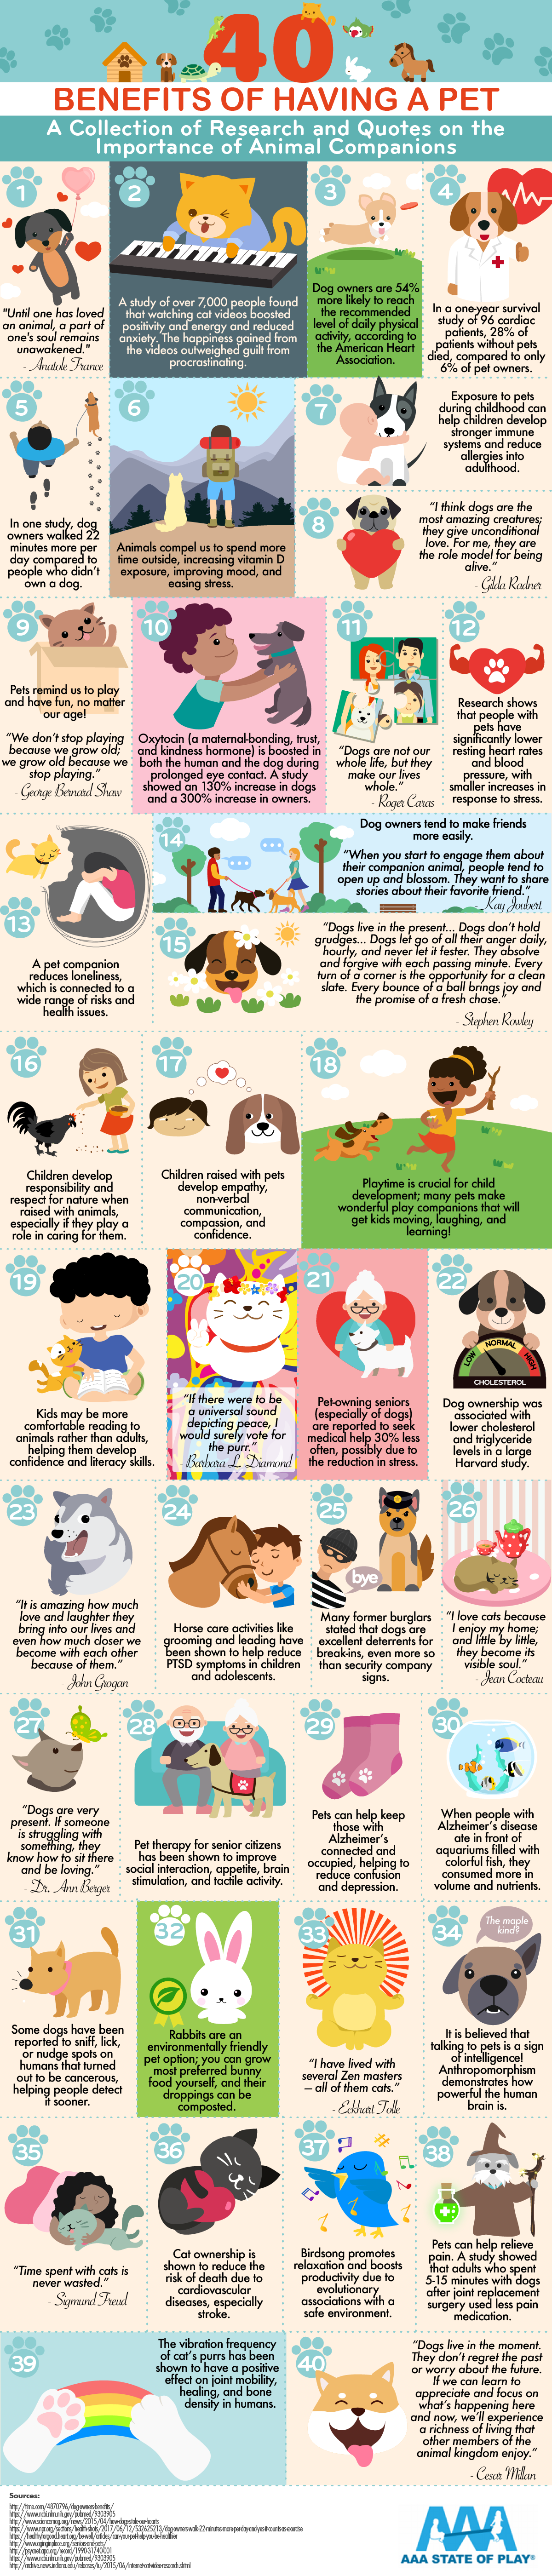 Benefits of Having a Pet #Infographic